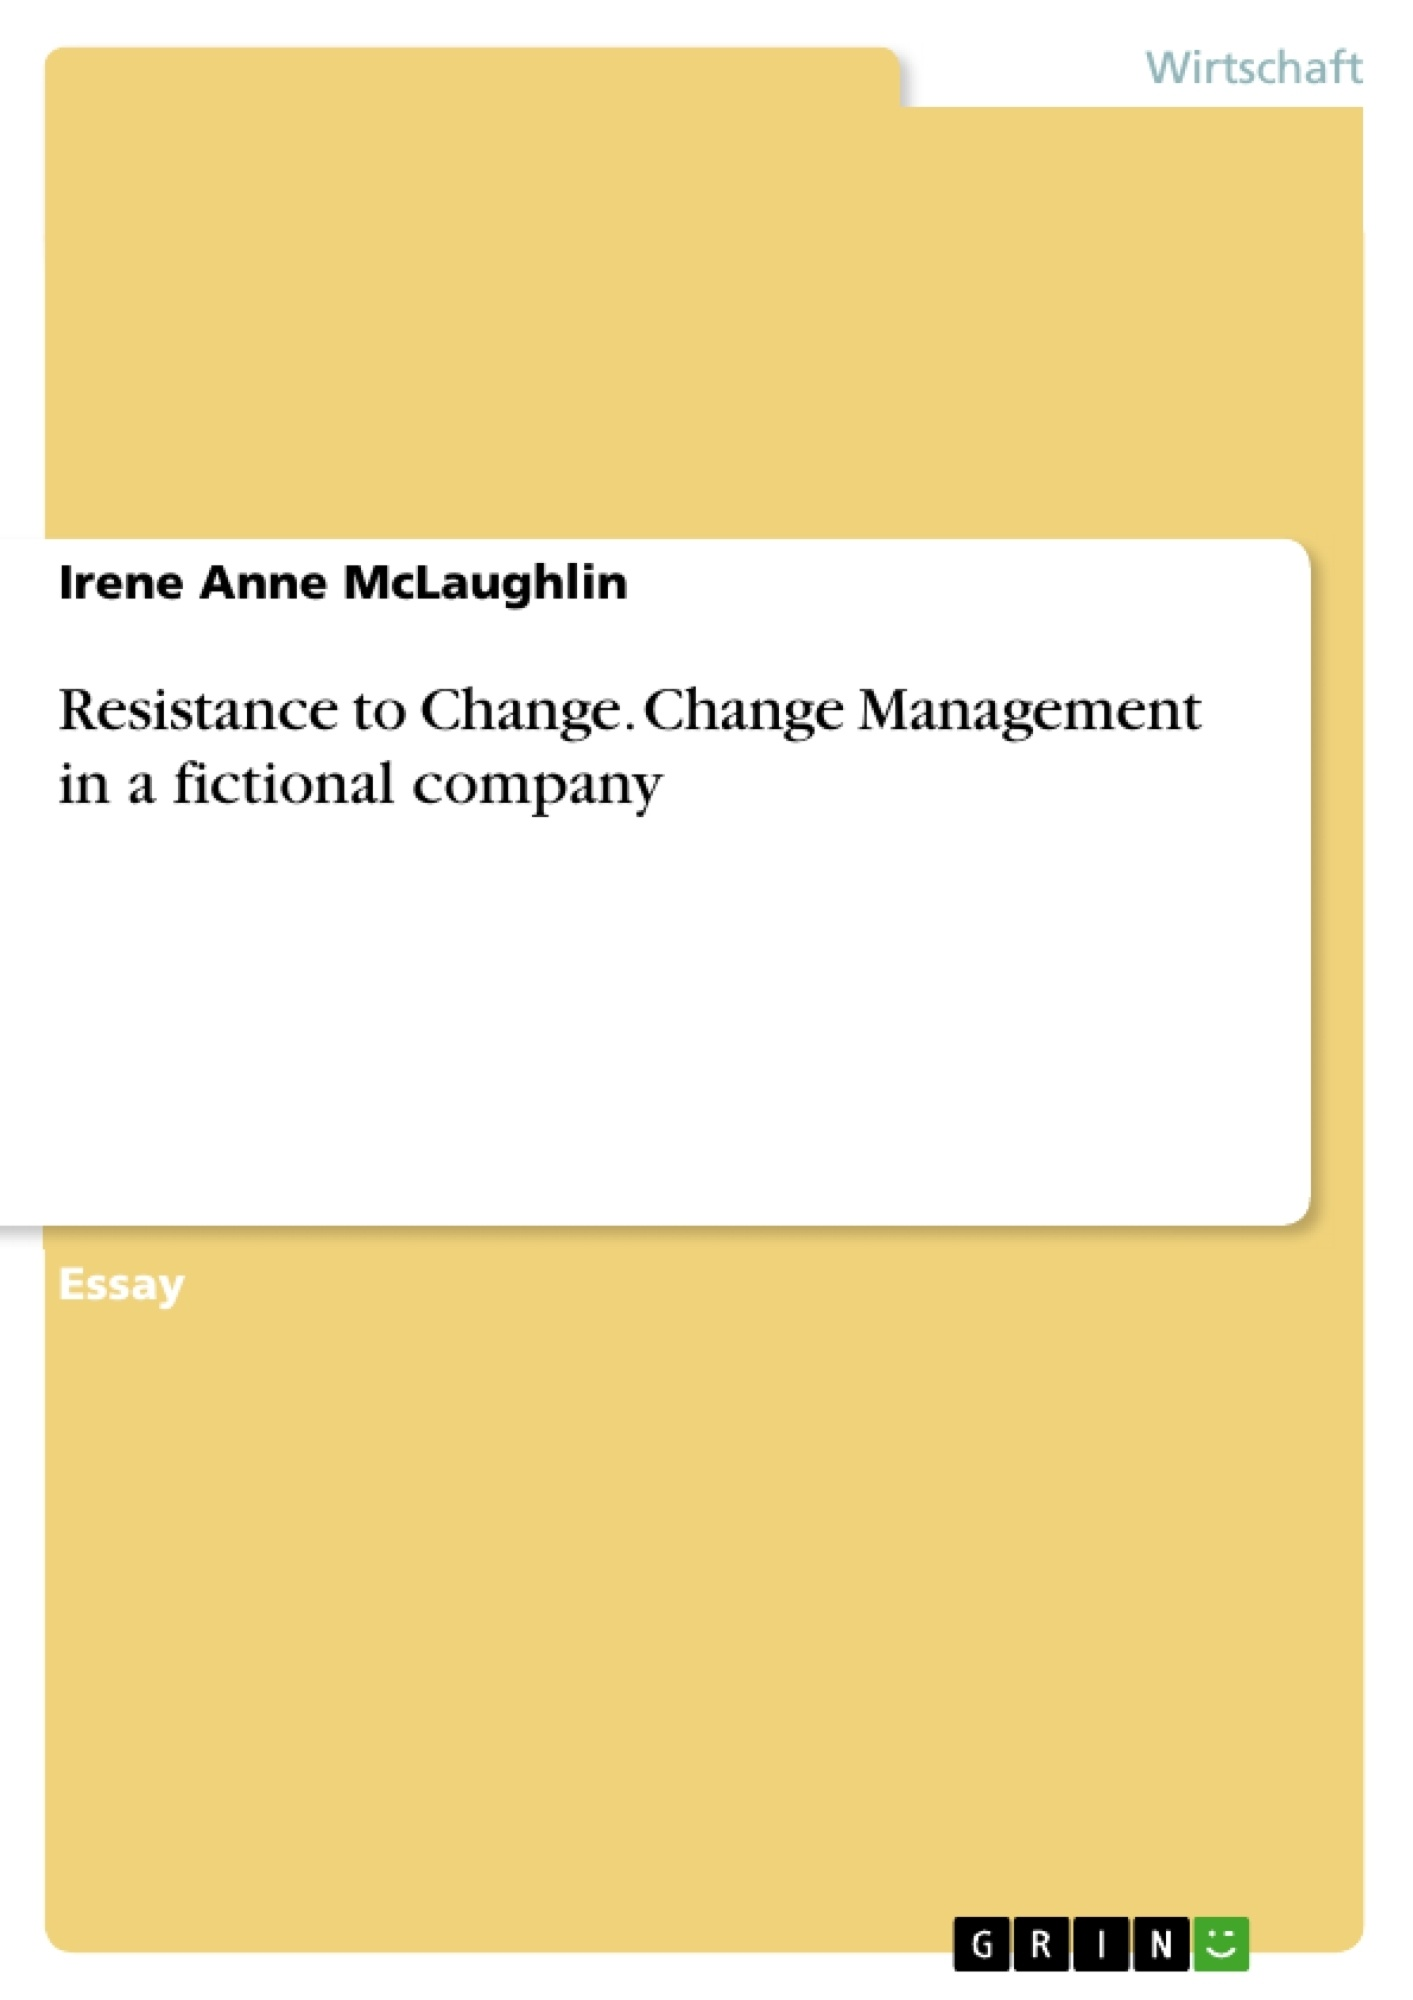 Titel: Resistance to Change. Change Management in a fictional company